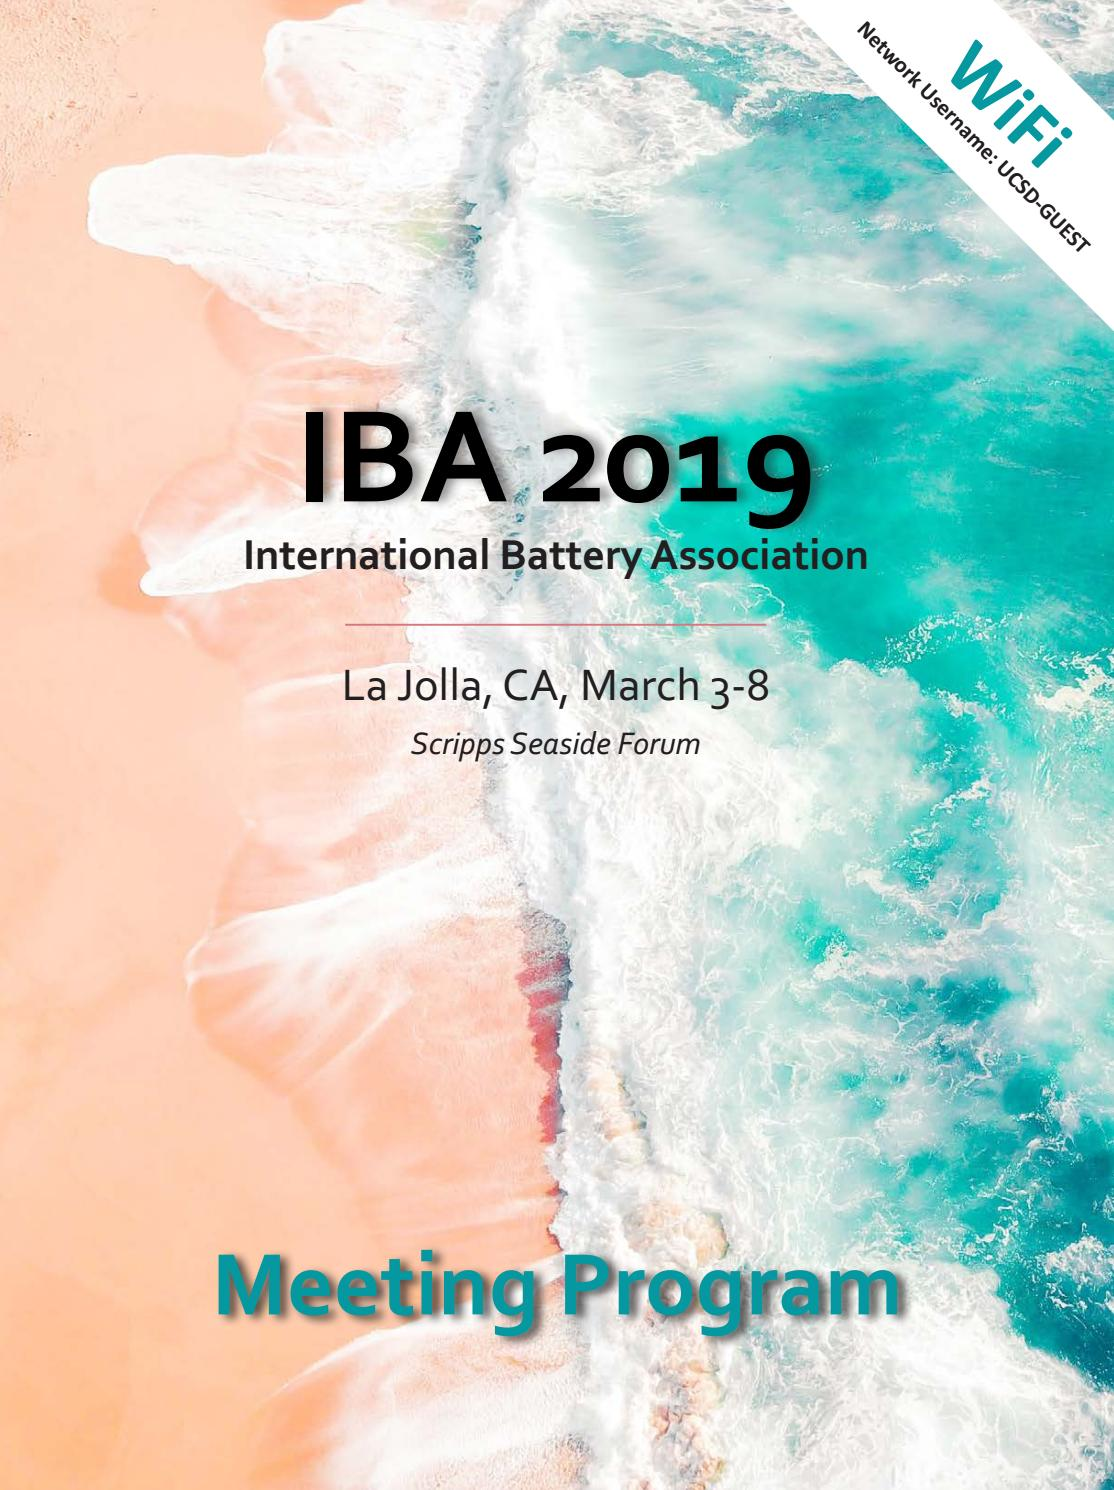 IBA 2019 by The Electrochemical Society - issuu